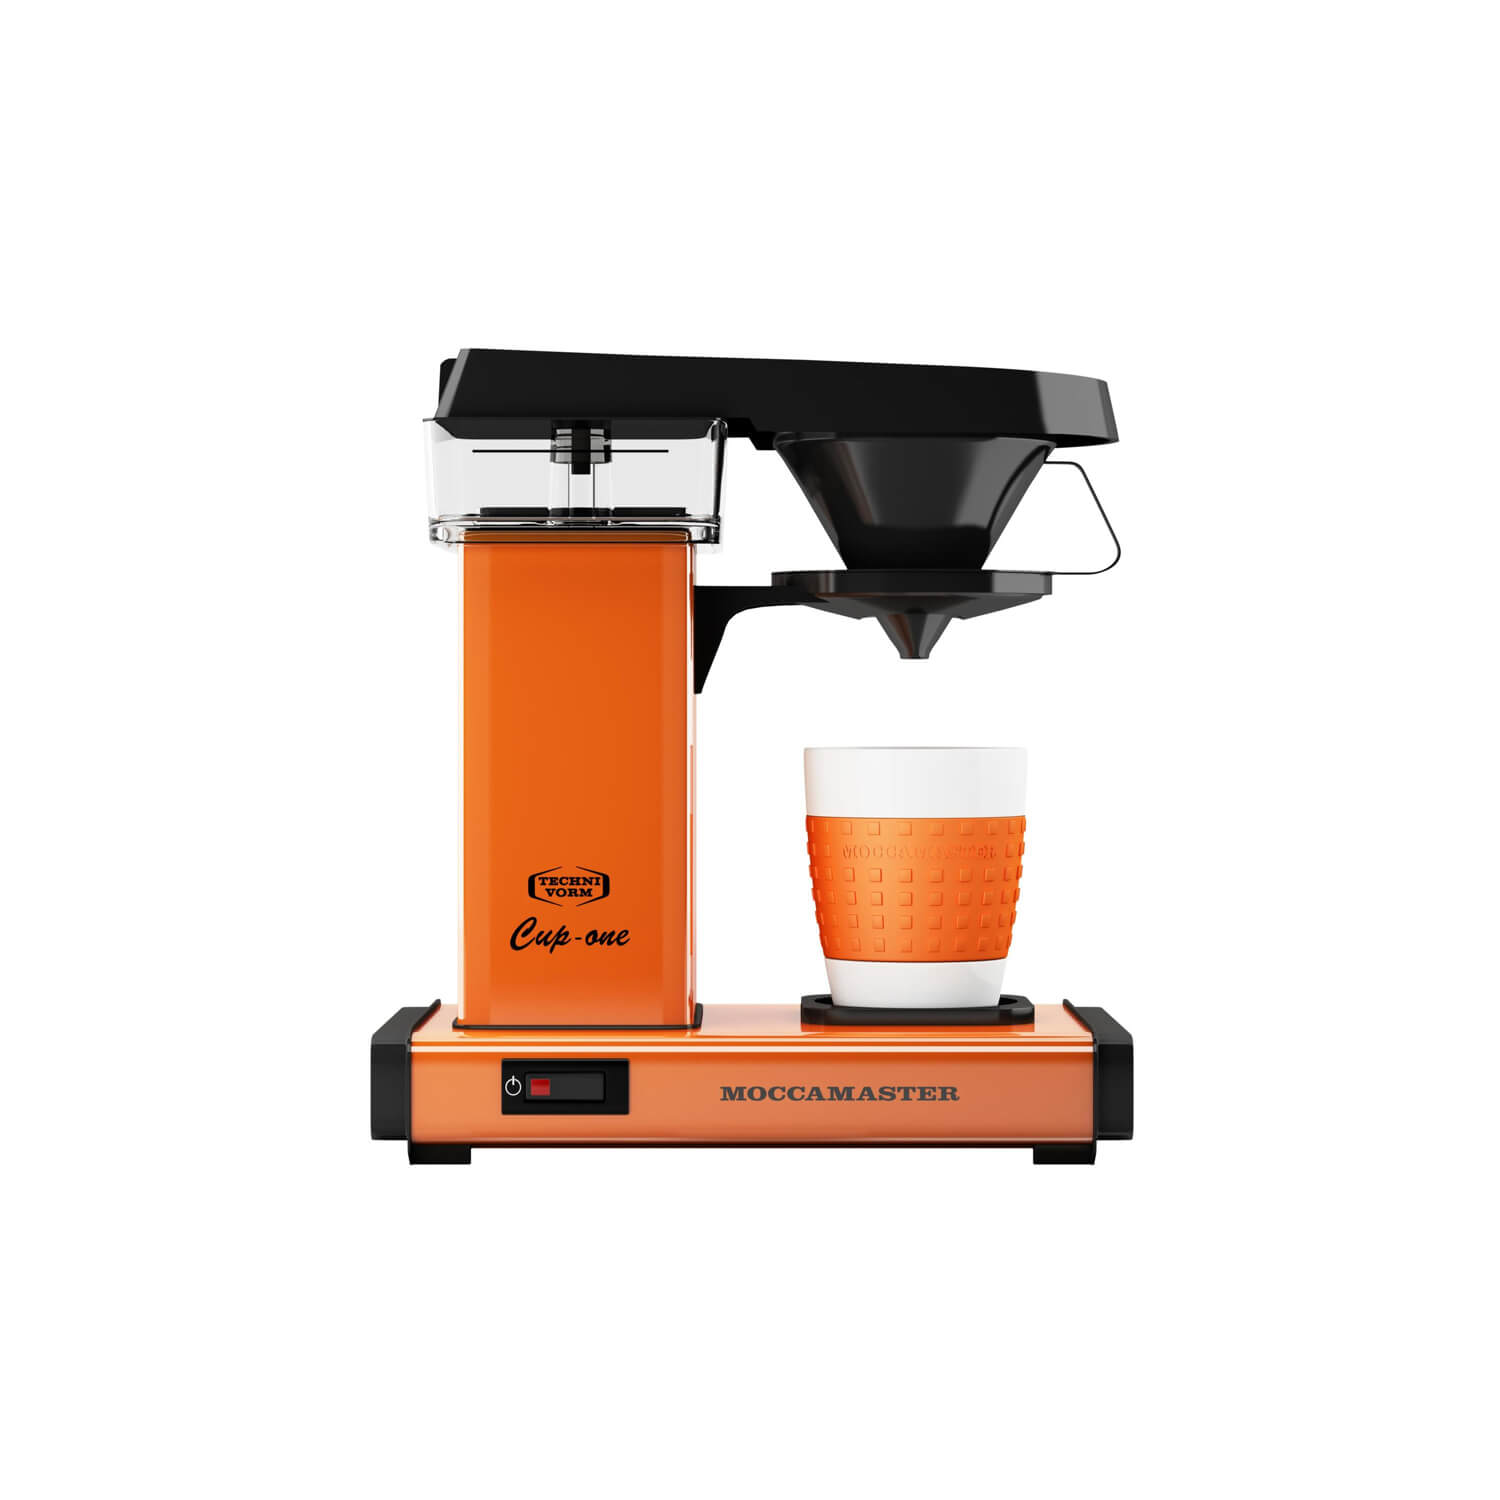 Moccamaster - koffiezetter - Cup-One - Orange